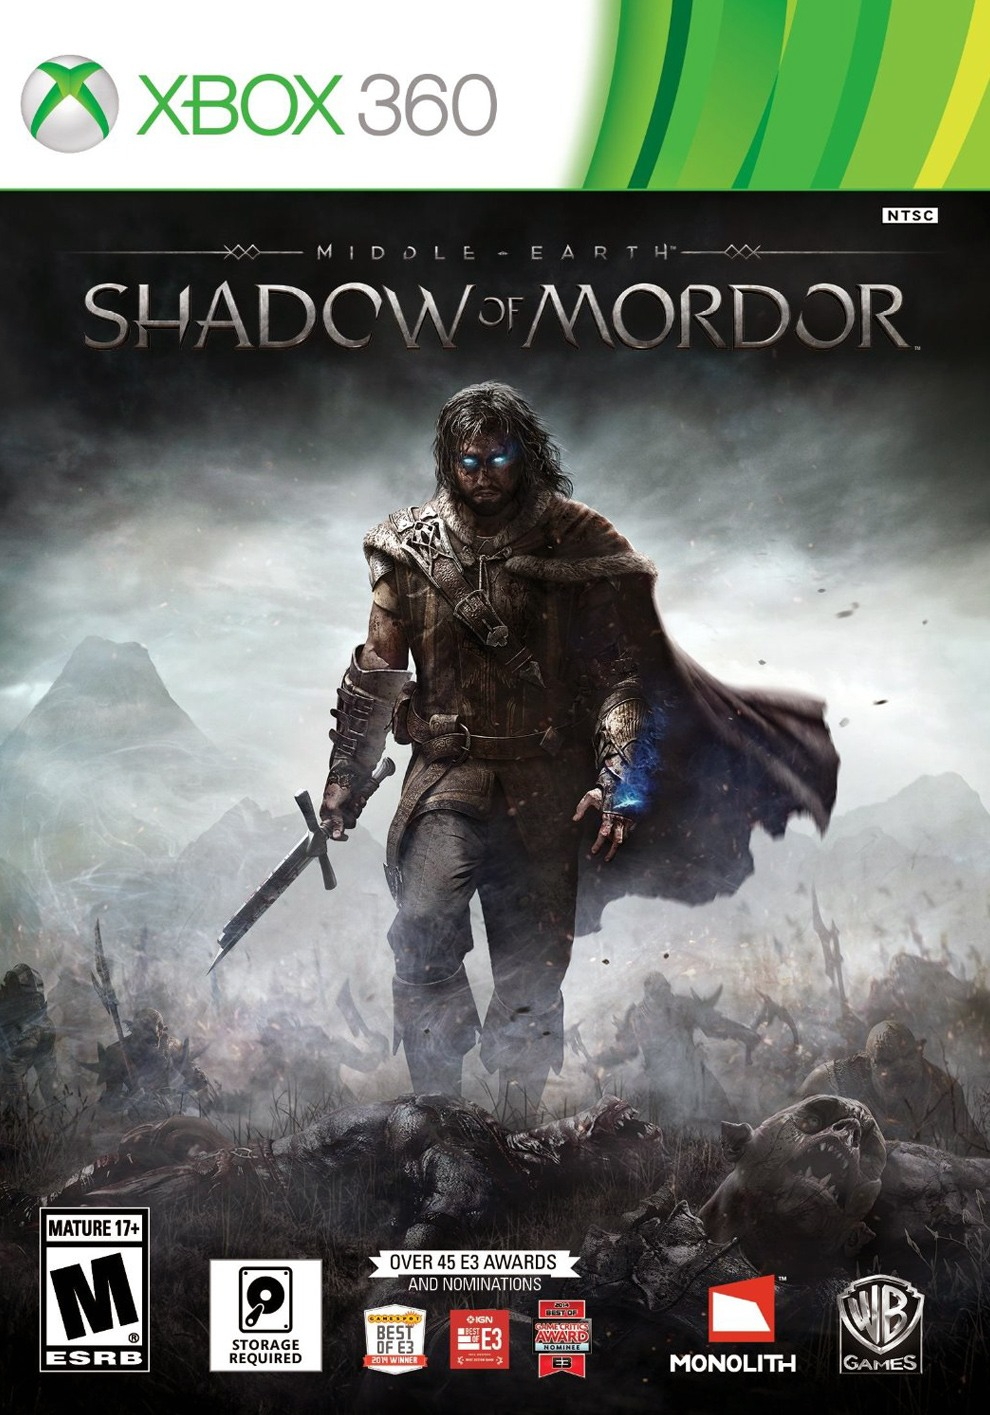 [XBOX 360] Middle-earth: Shadow of Mordor